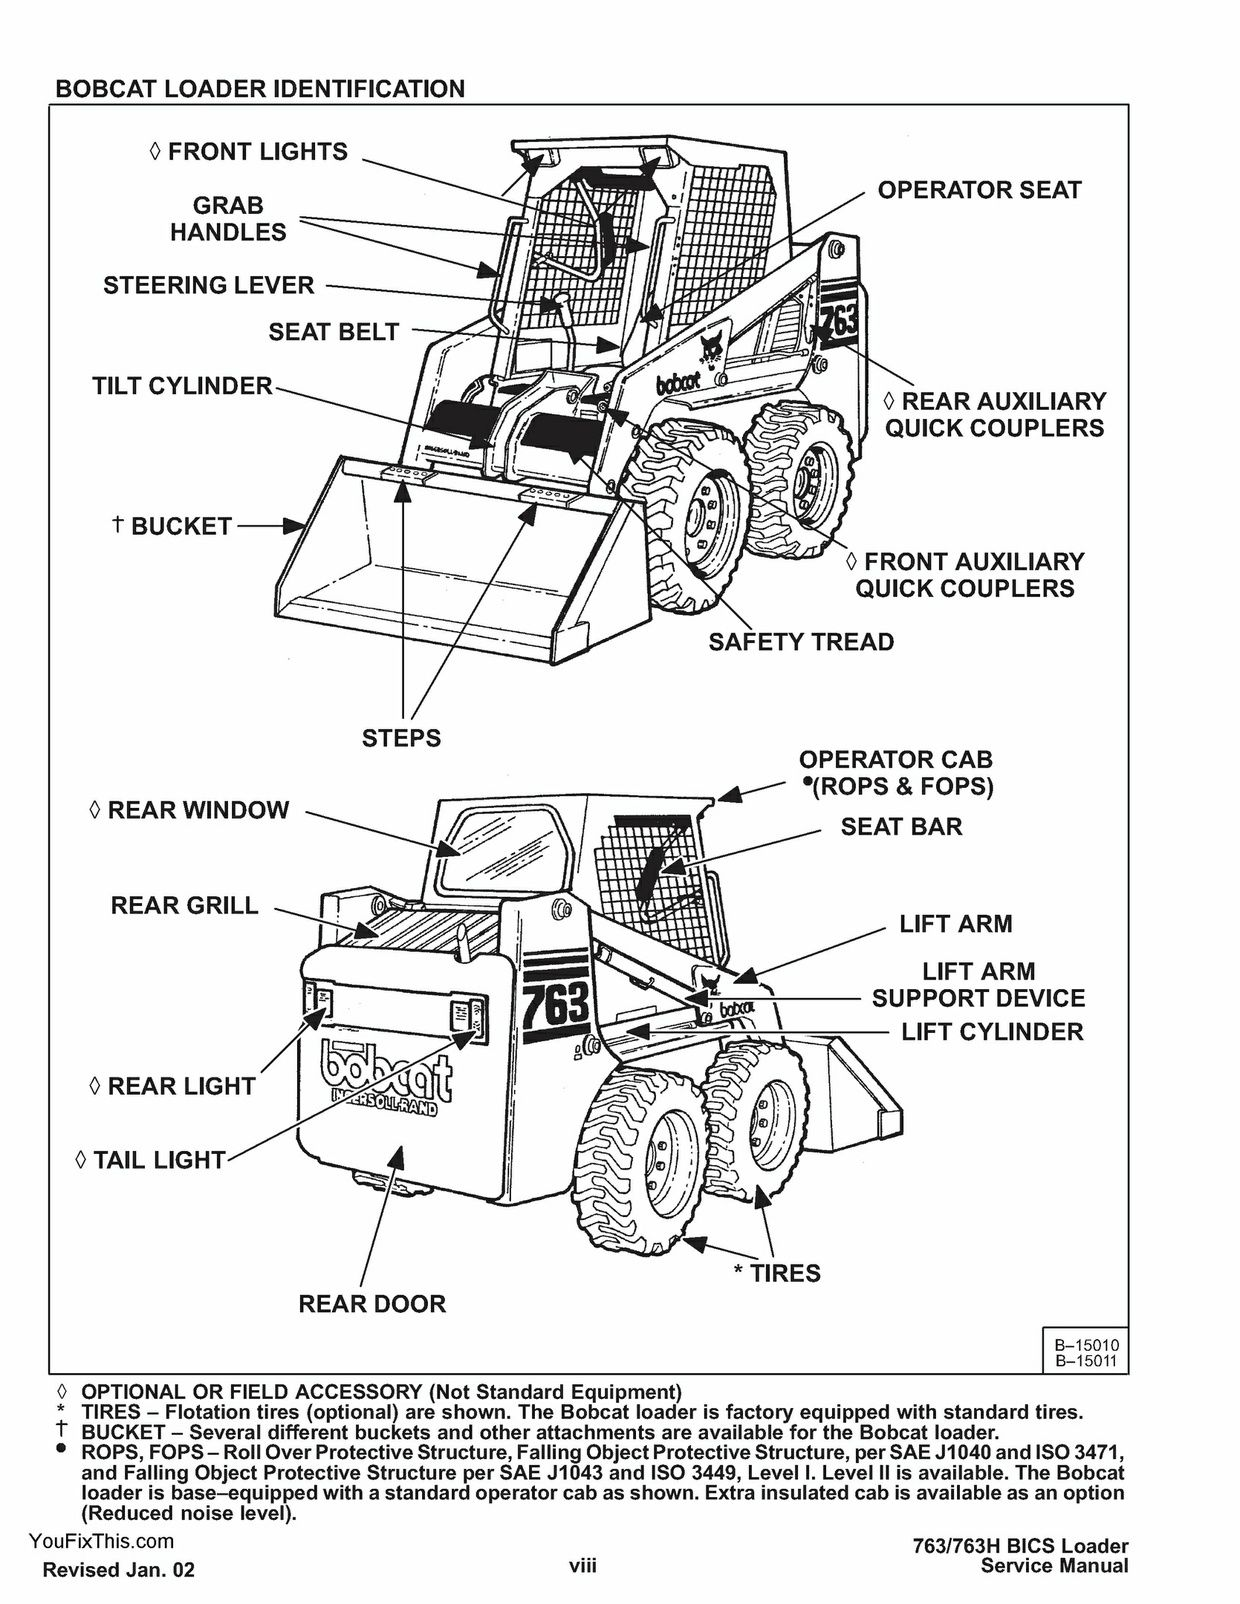 INSTANT DOWNLOAD Bobcat 763 Skid Steer Loader Repair